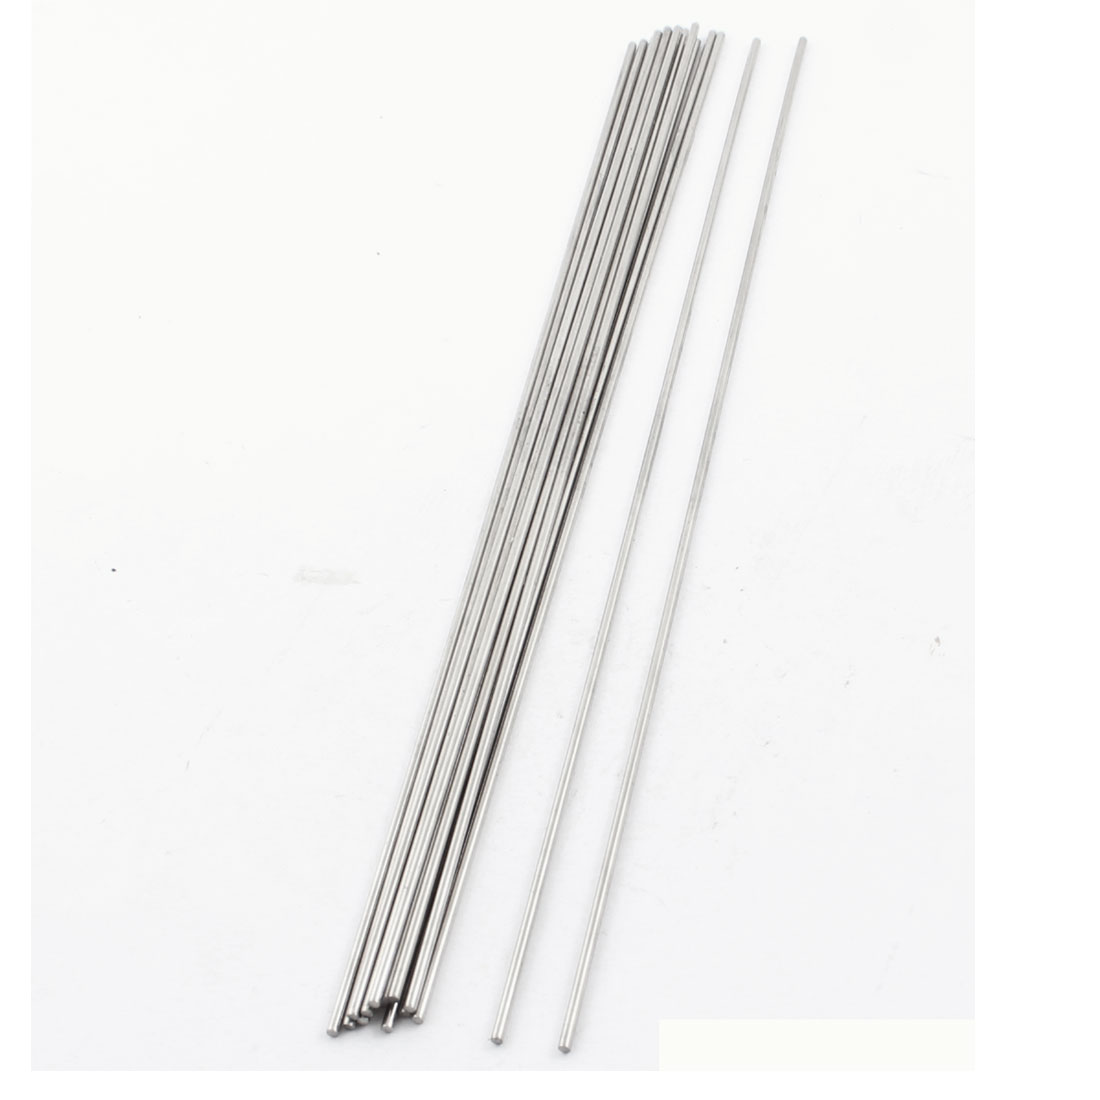 15Pcs 2mm Dia 250mm Length Stainless Steel Round Rod Shaft for RC Toy Car